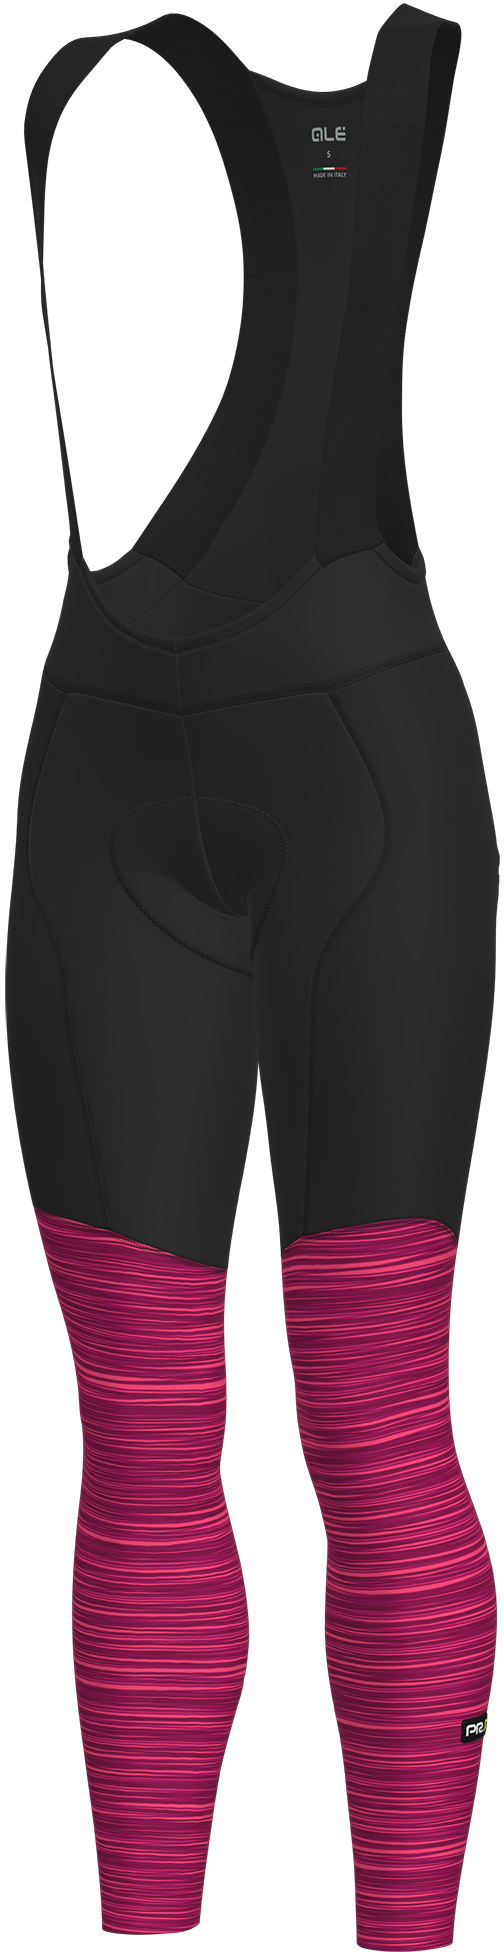 Alé Women's The End Bib Tights | Trousers